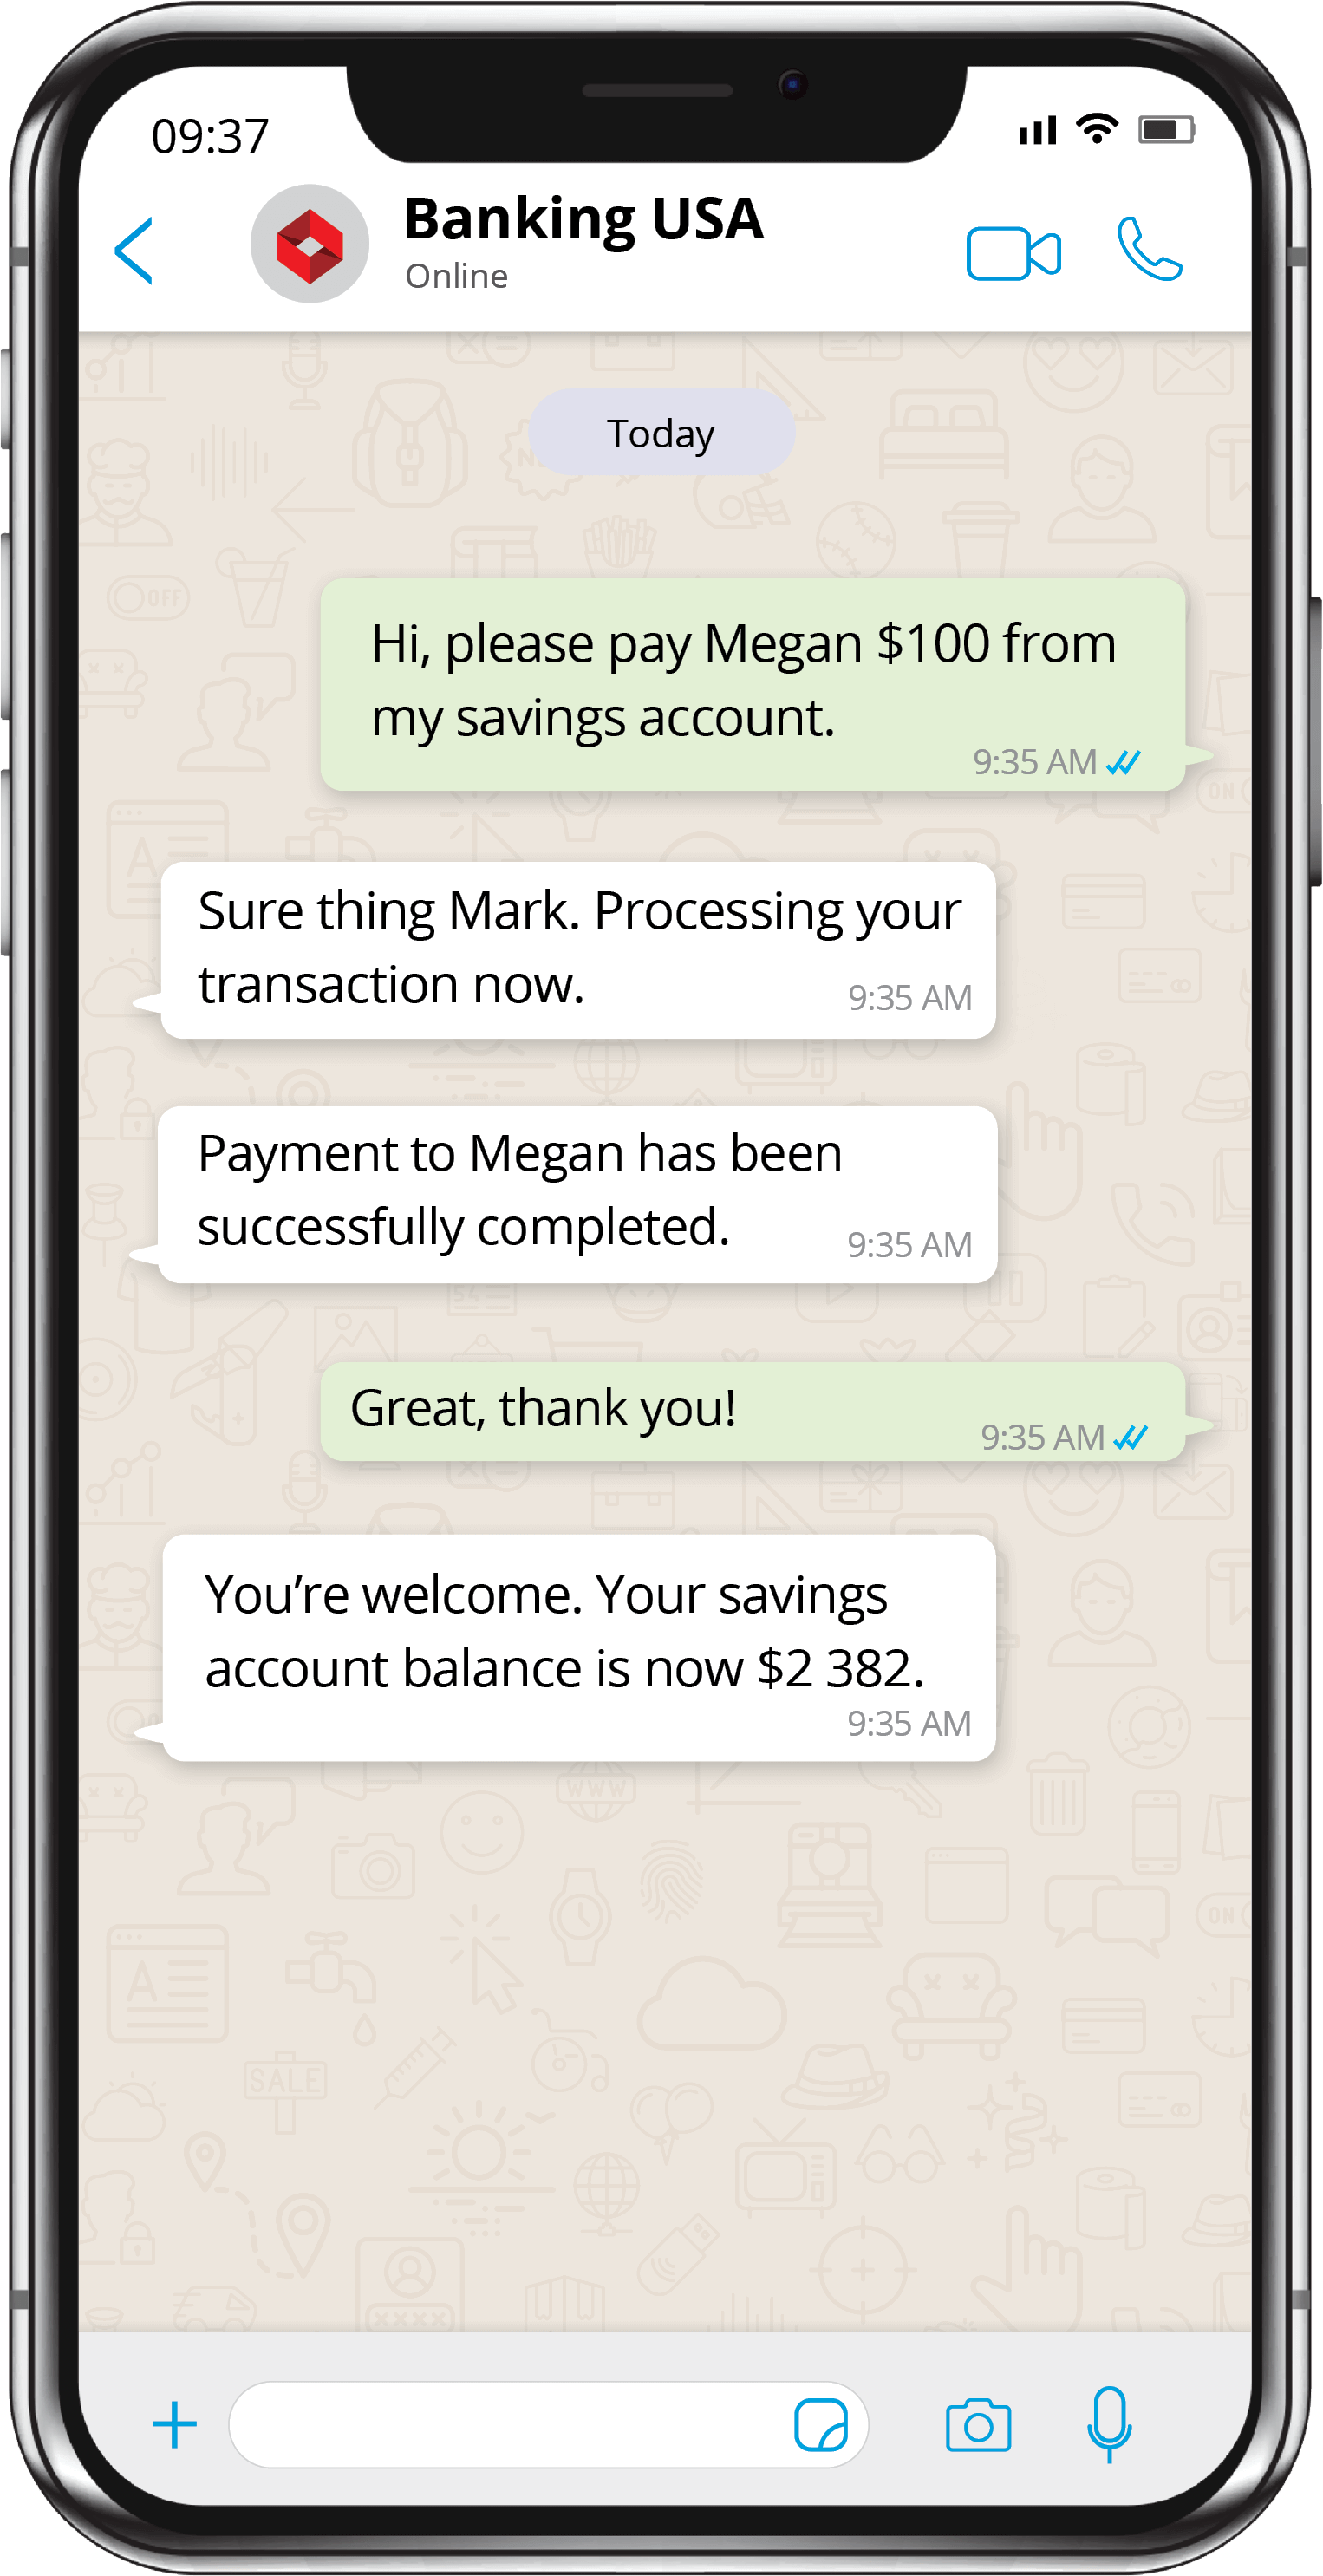 chat-commerce_screen-1_banking_opt